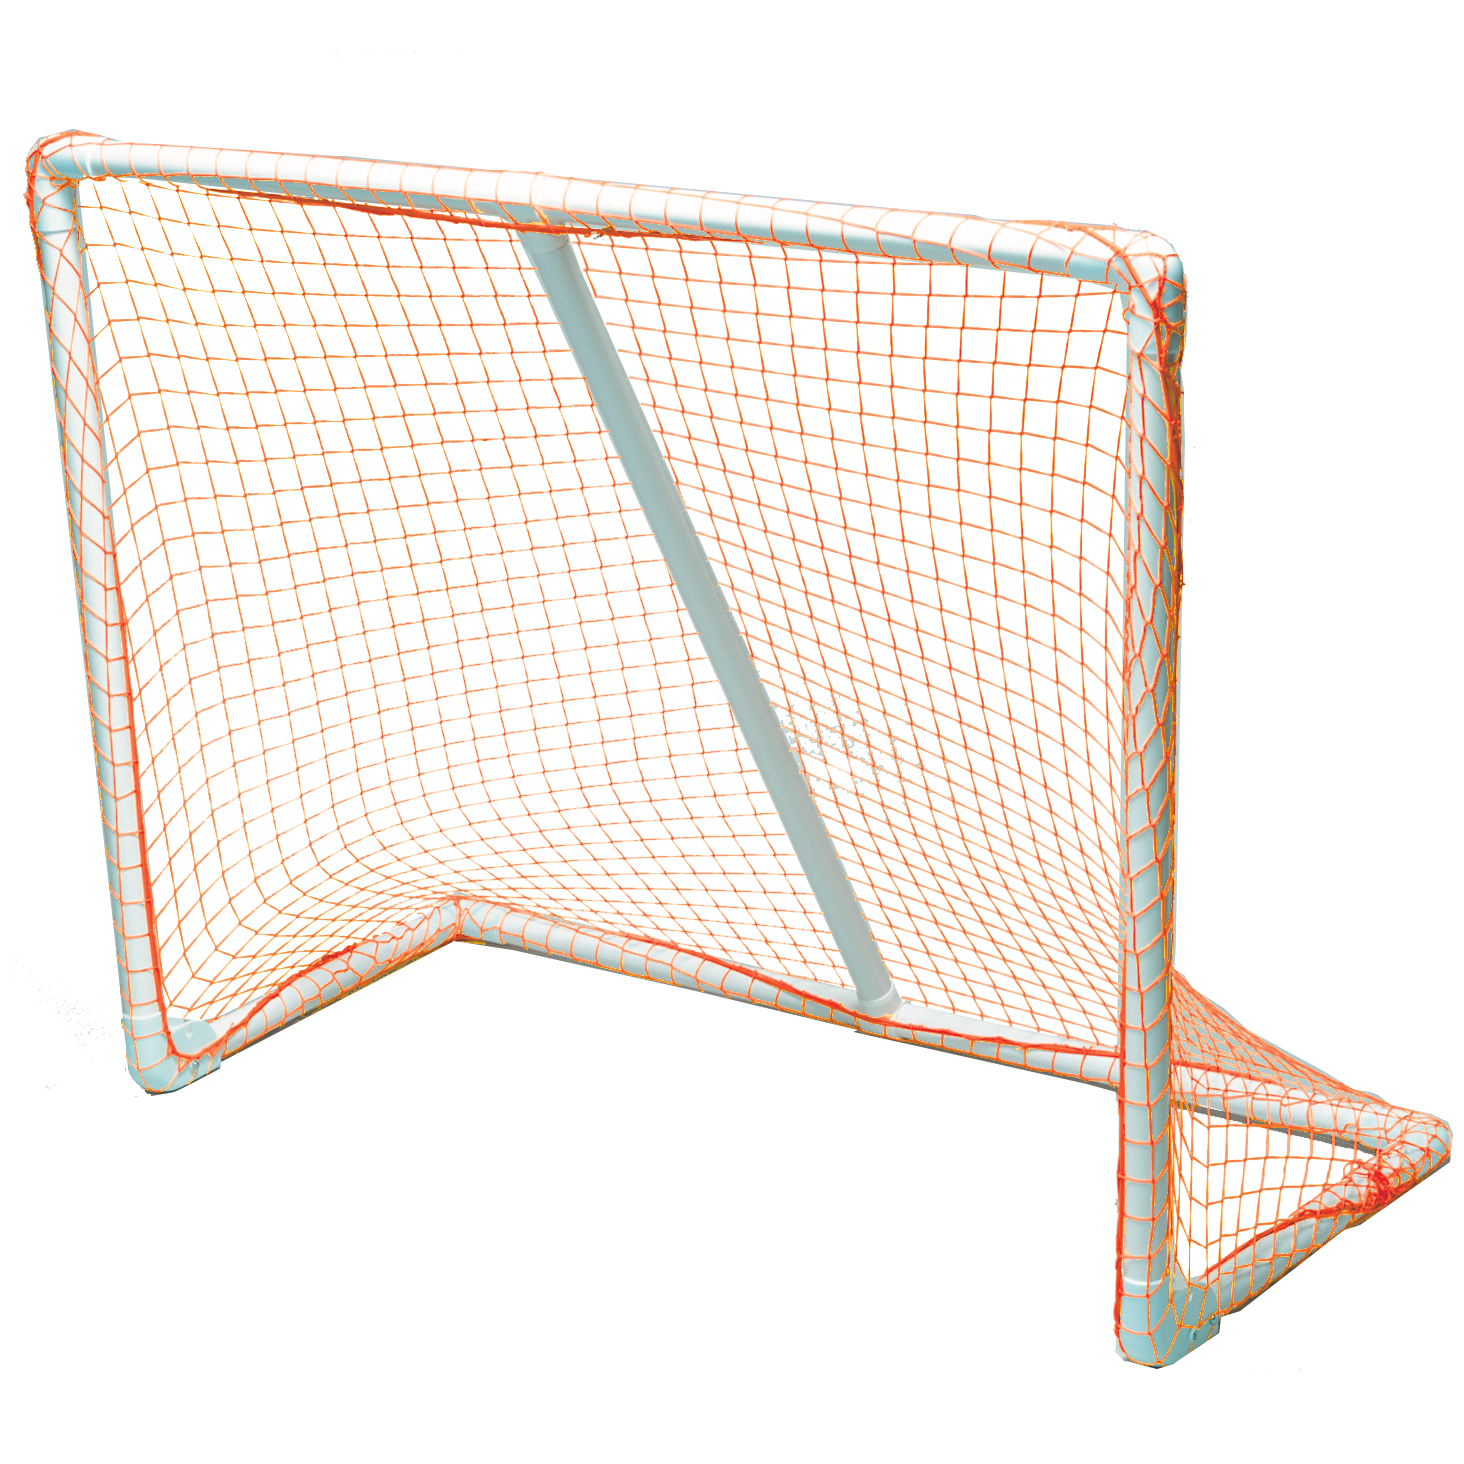 Park and Sports SGP 6 Foot Soccer Goal